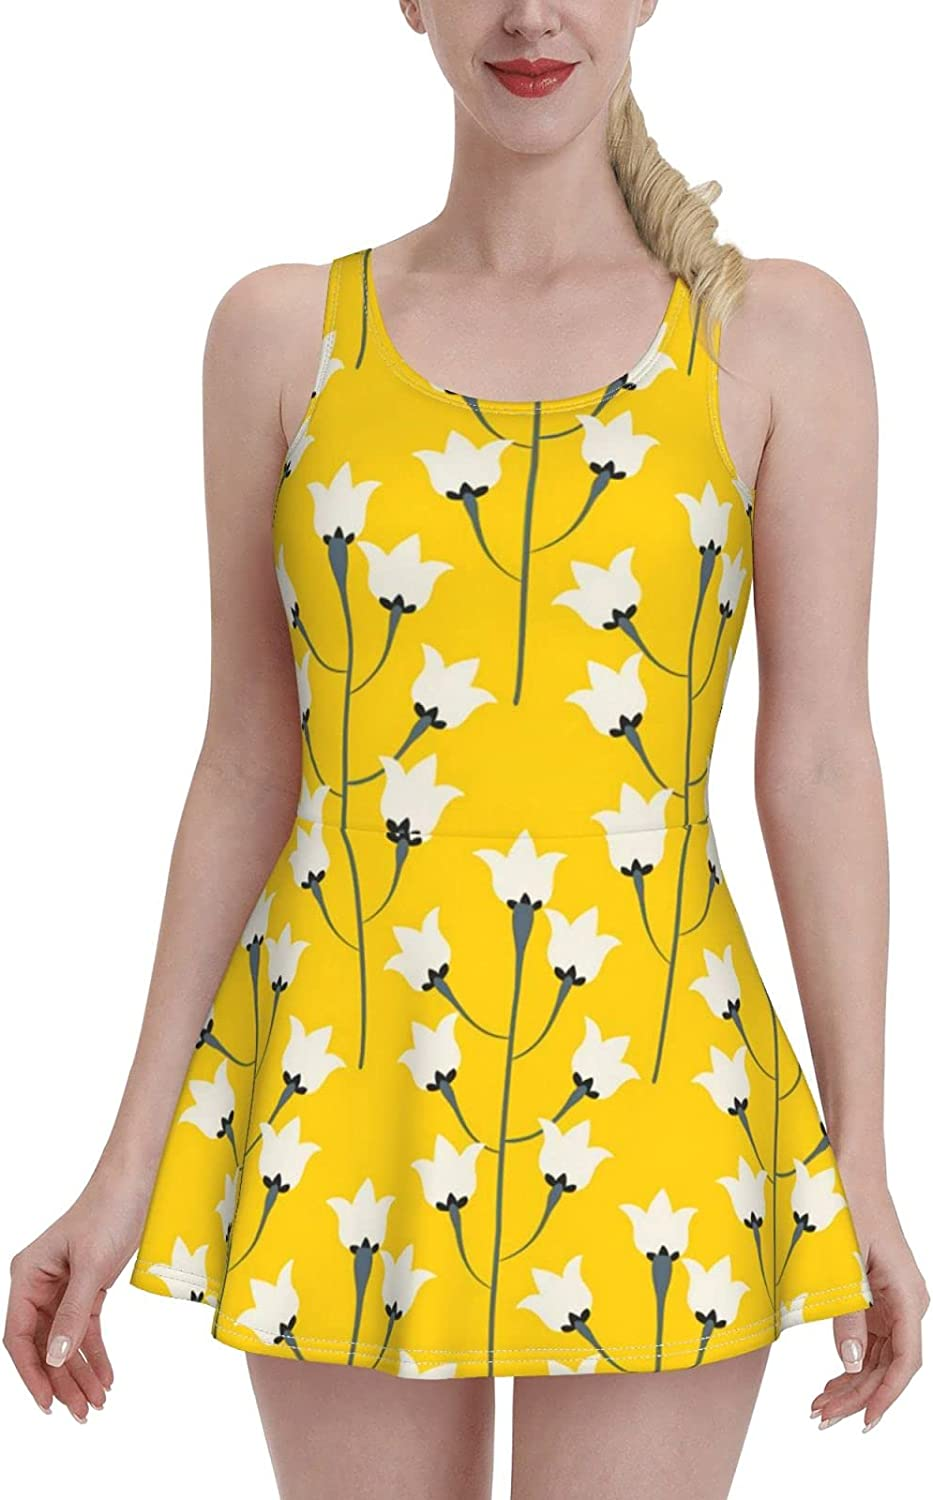 Neat Flowers Ladies Ruffled One-Piece Atlanta Inexpensive Mall Adjustable with Swimsuit S